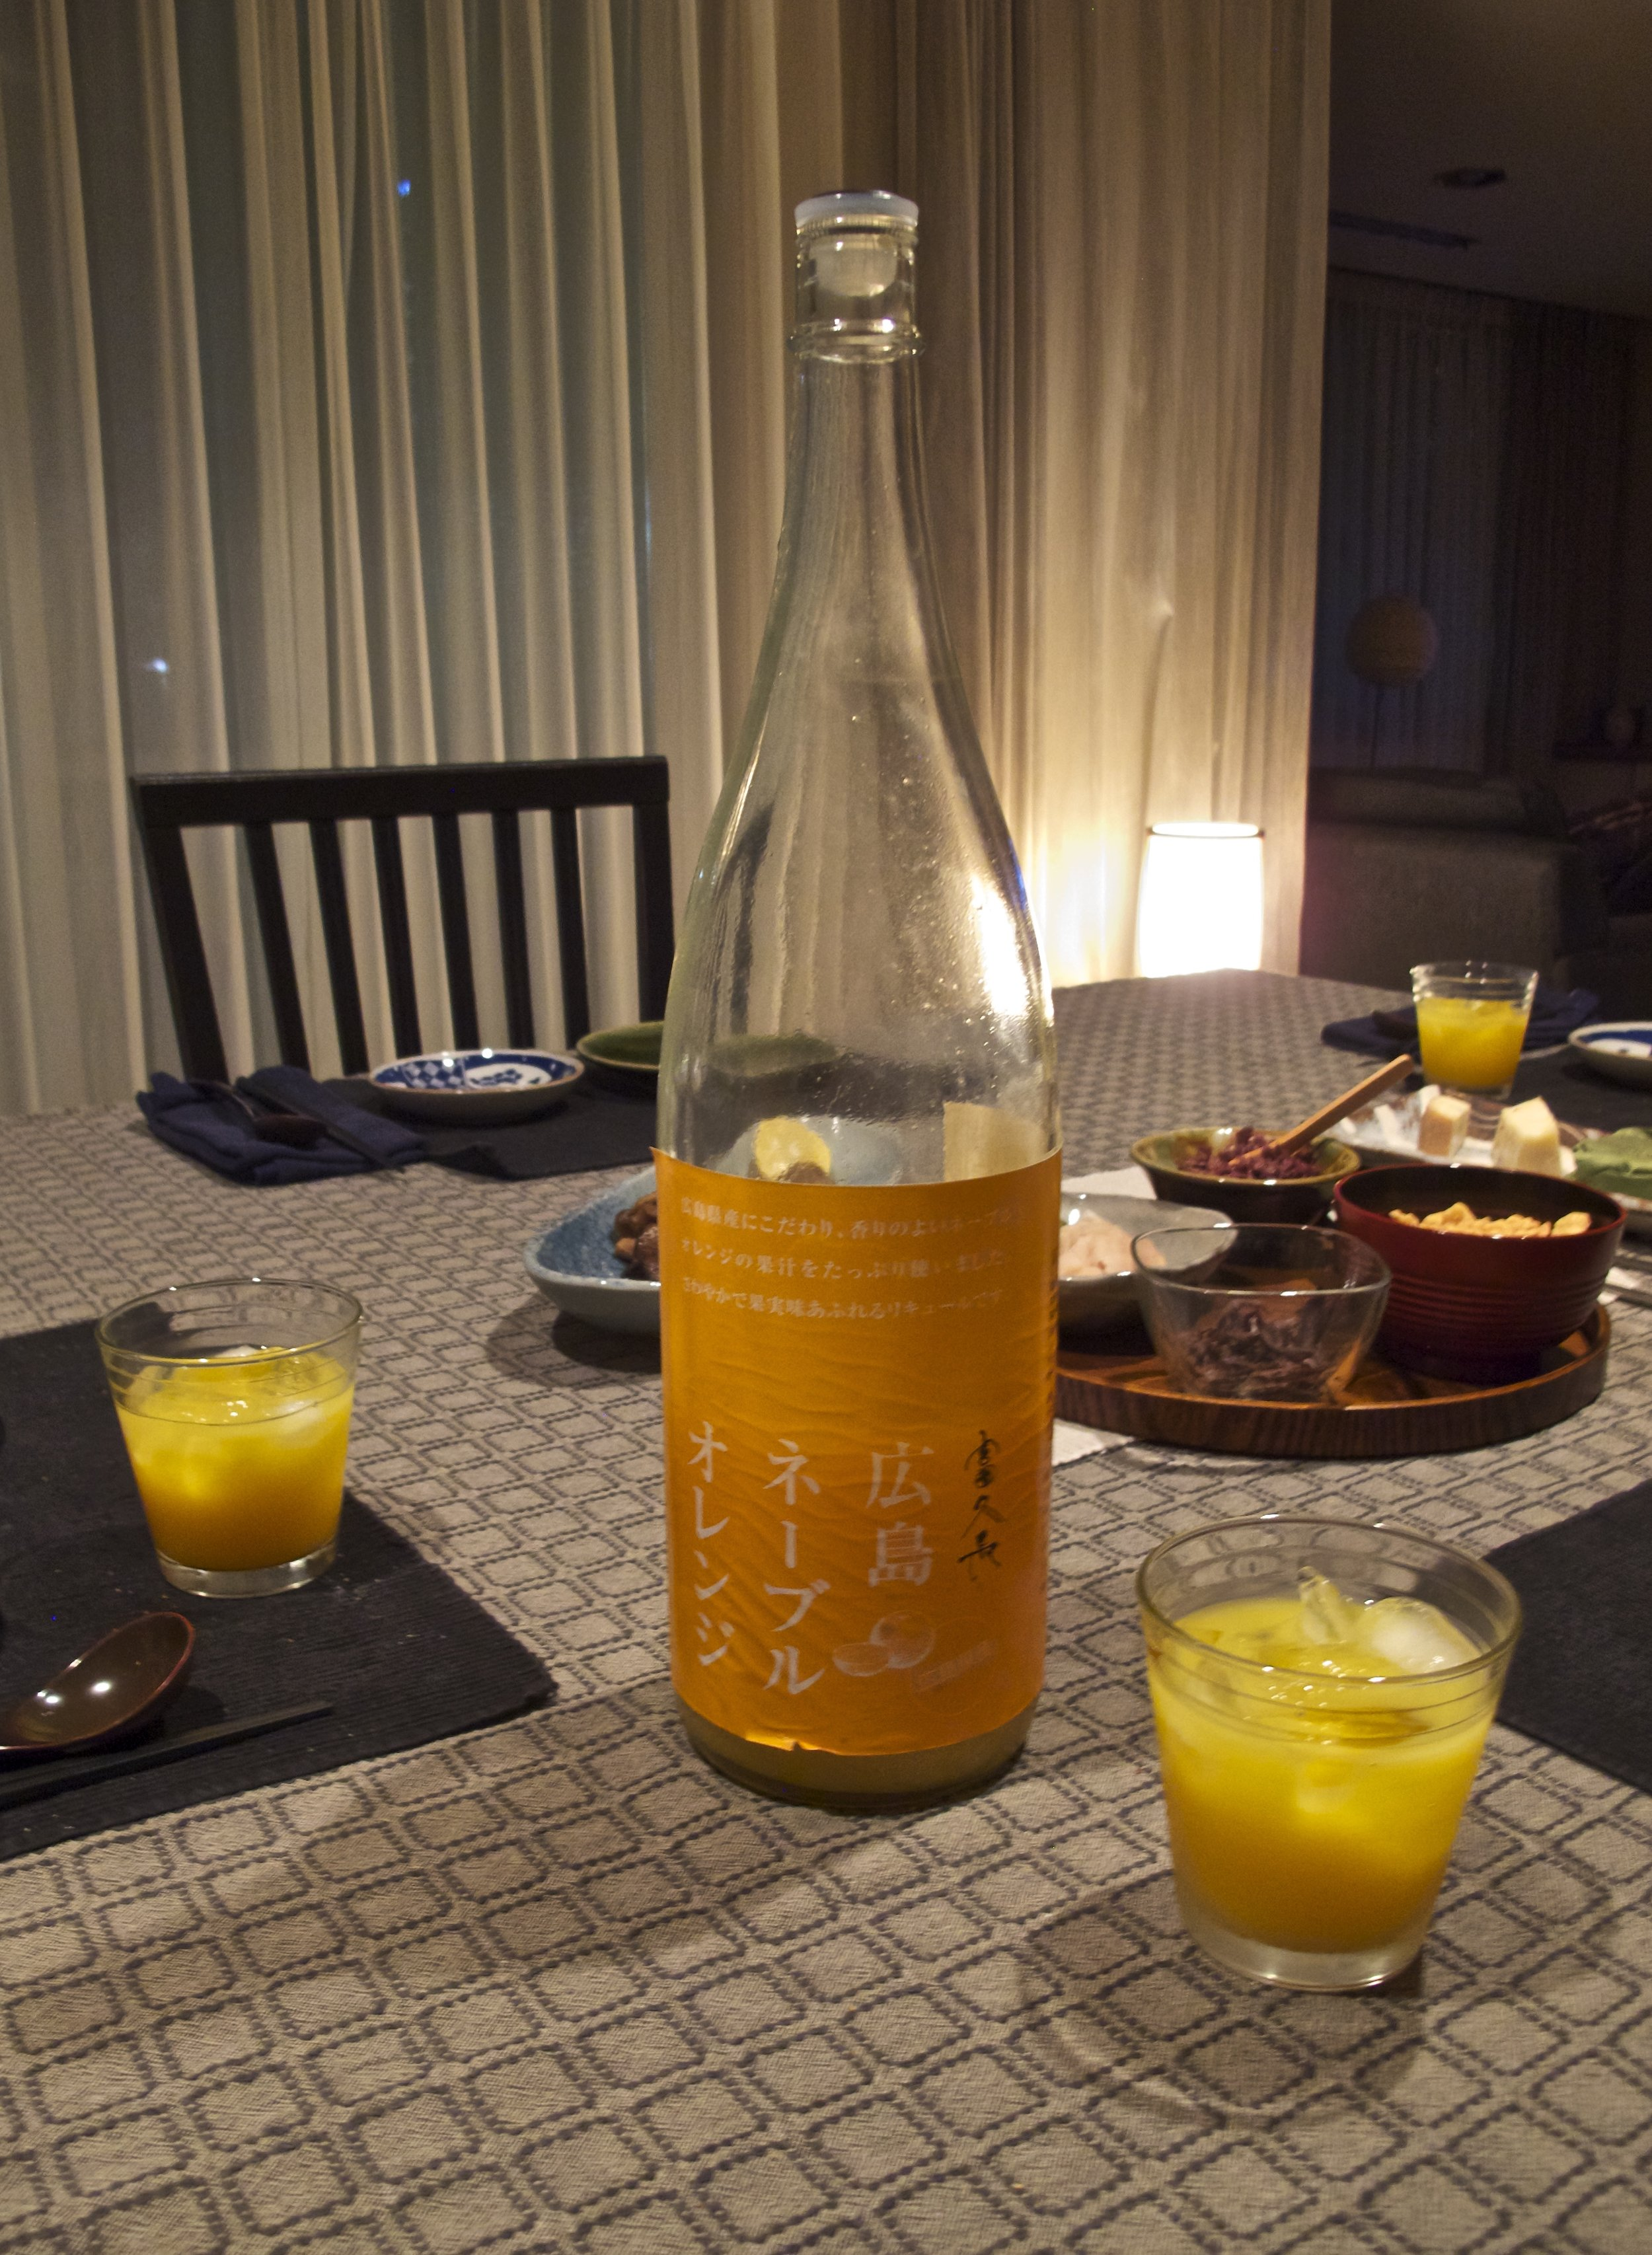 """The all-natural citric acidity of Imada Shuzo's """"Hiroshima Navel Orange"""" sake makes it a healthy and refreshingly delicious drink that stimulates the appetite."""